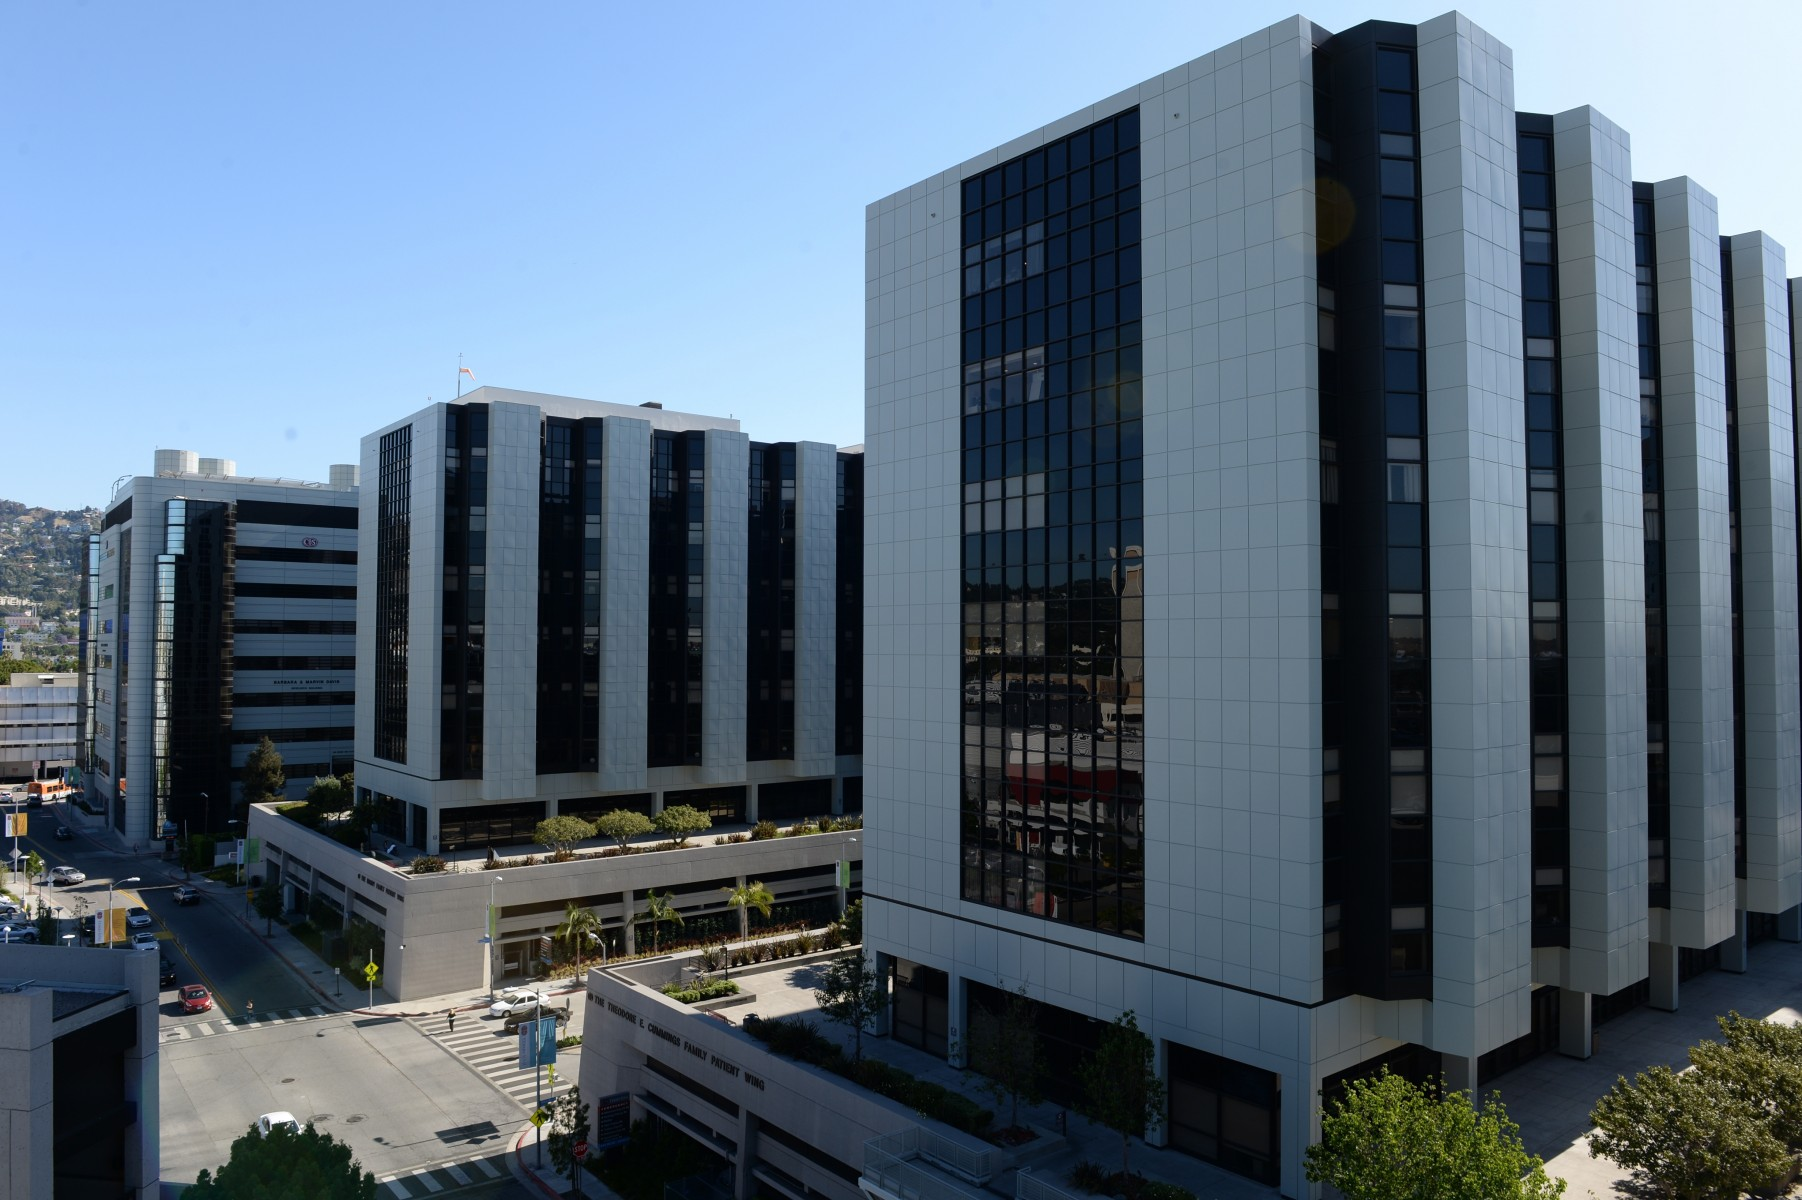 A view of the Cedars-Sinai Medical Center campus. Photo by Cedars-Sinai.